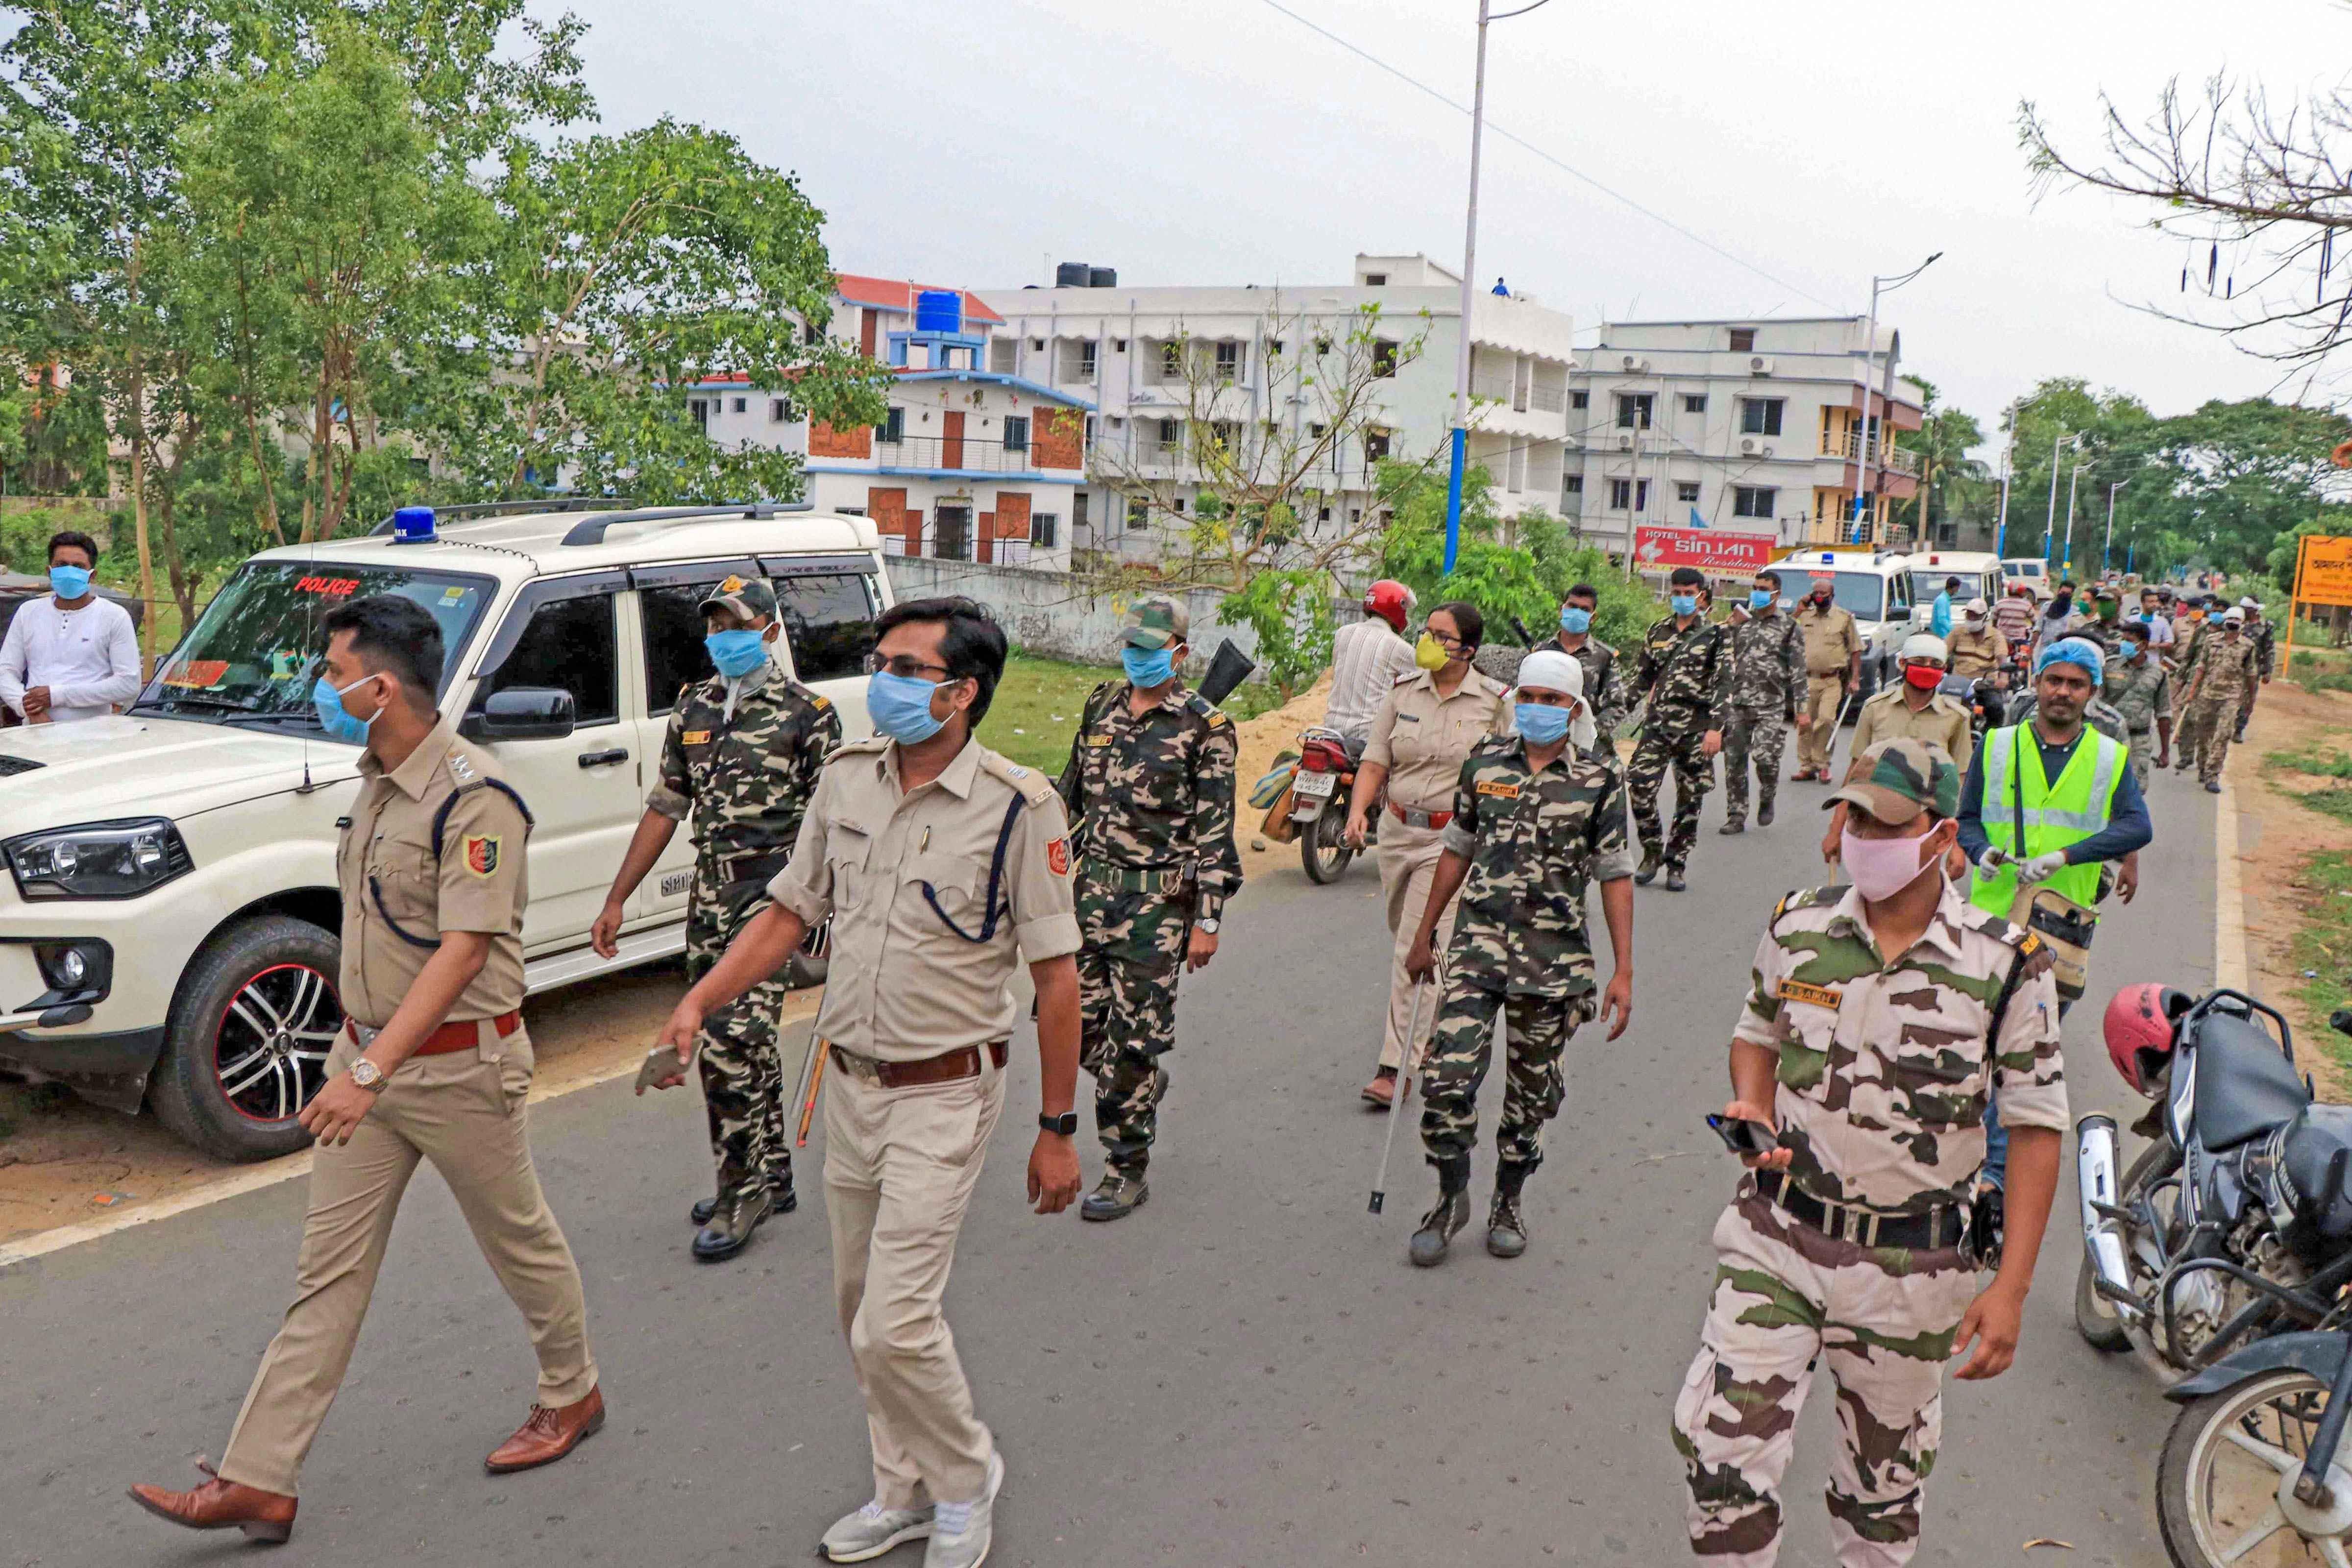 Security forces personnel try to control the situation after a protest by the residents of Goalpara village against setting up of a quarantine centre for COVID-19 suspects in their village, in Birbhum district, Friday, May 1, 2020.